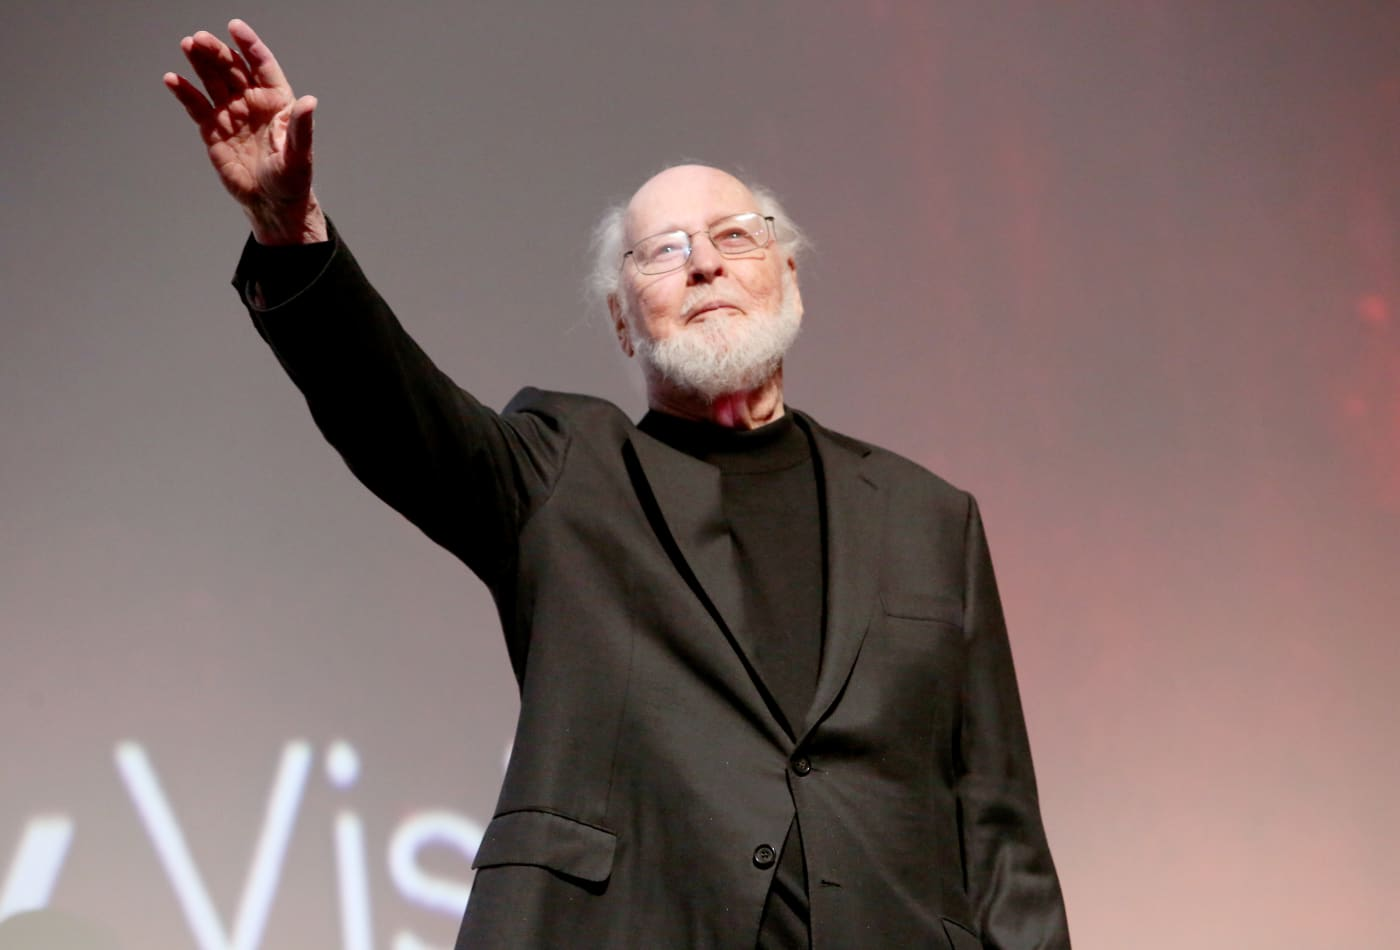 'Star Wars' composer John Williams beats own Oscar record with 52nd nomination